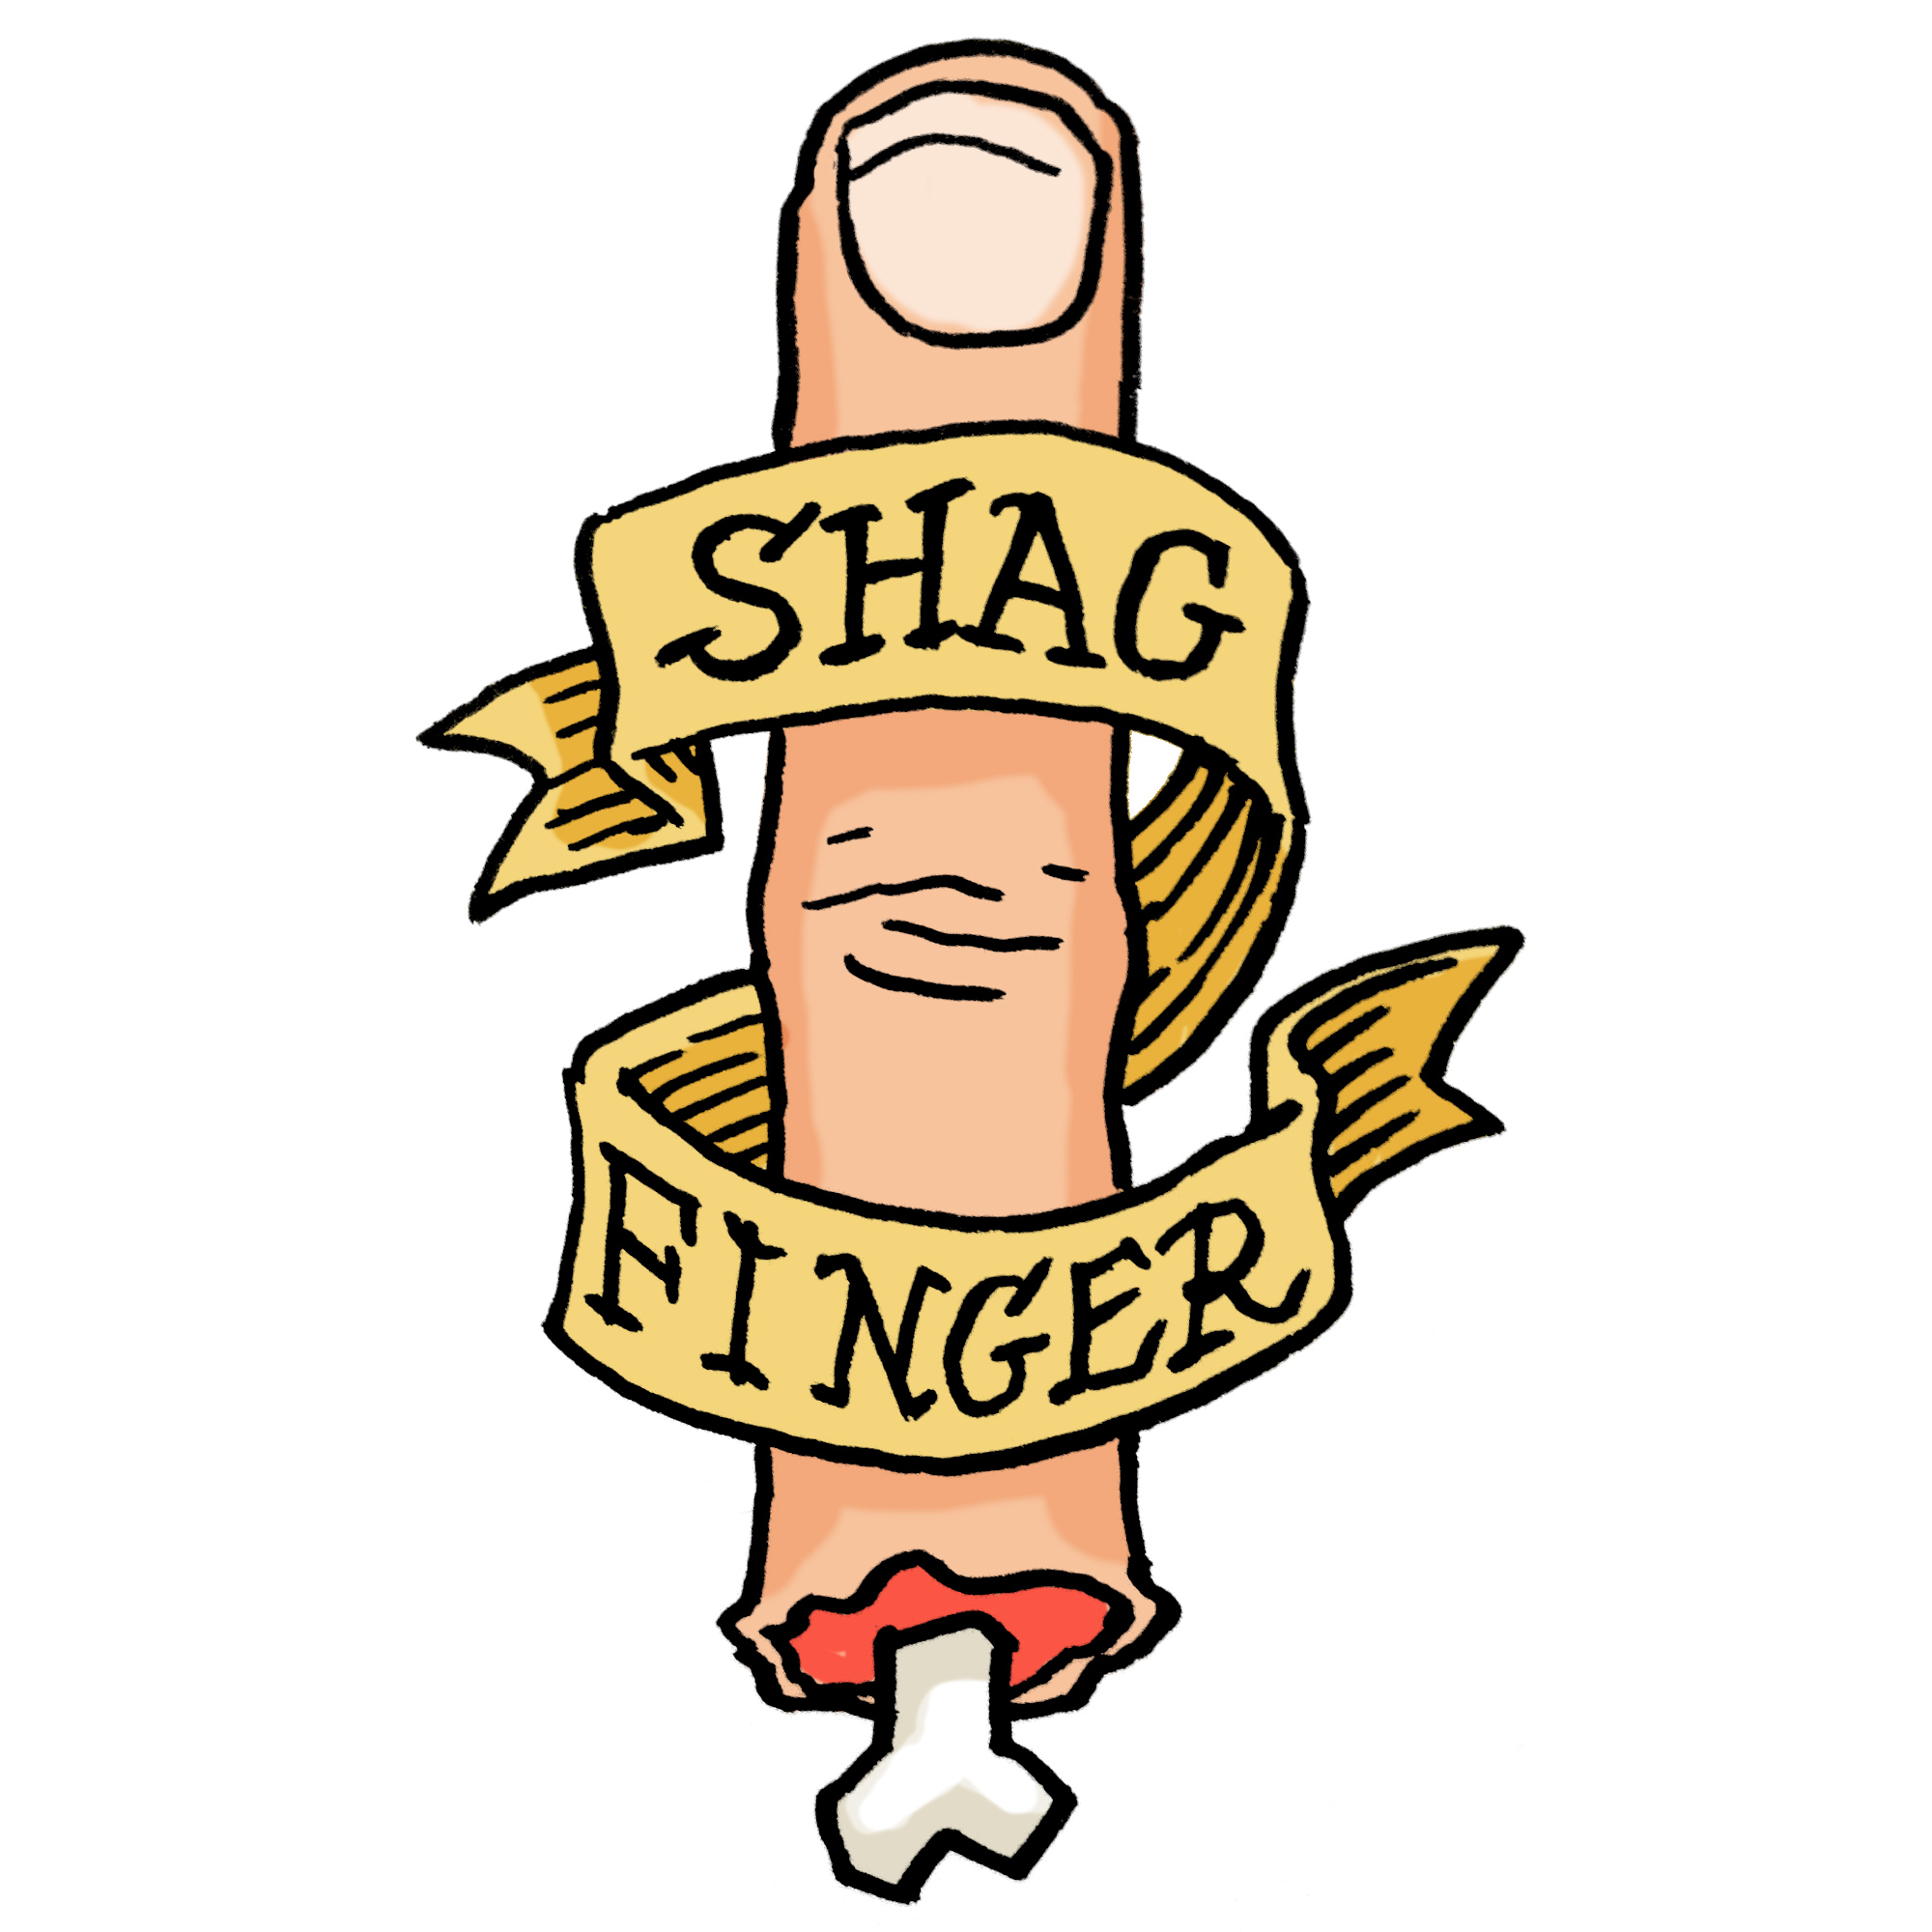 'Shag Finger' tattoo design